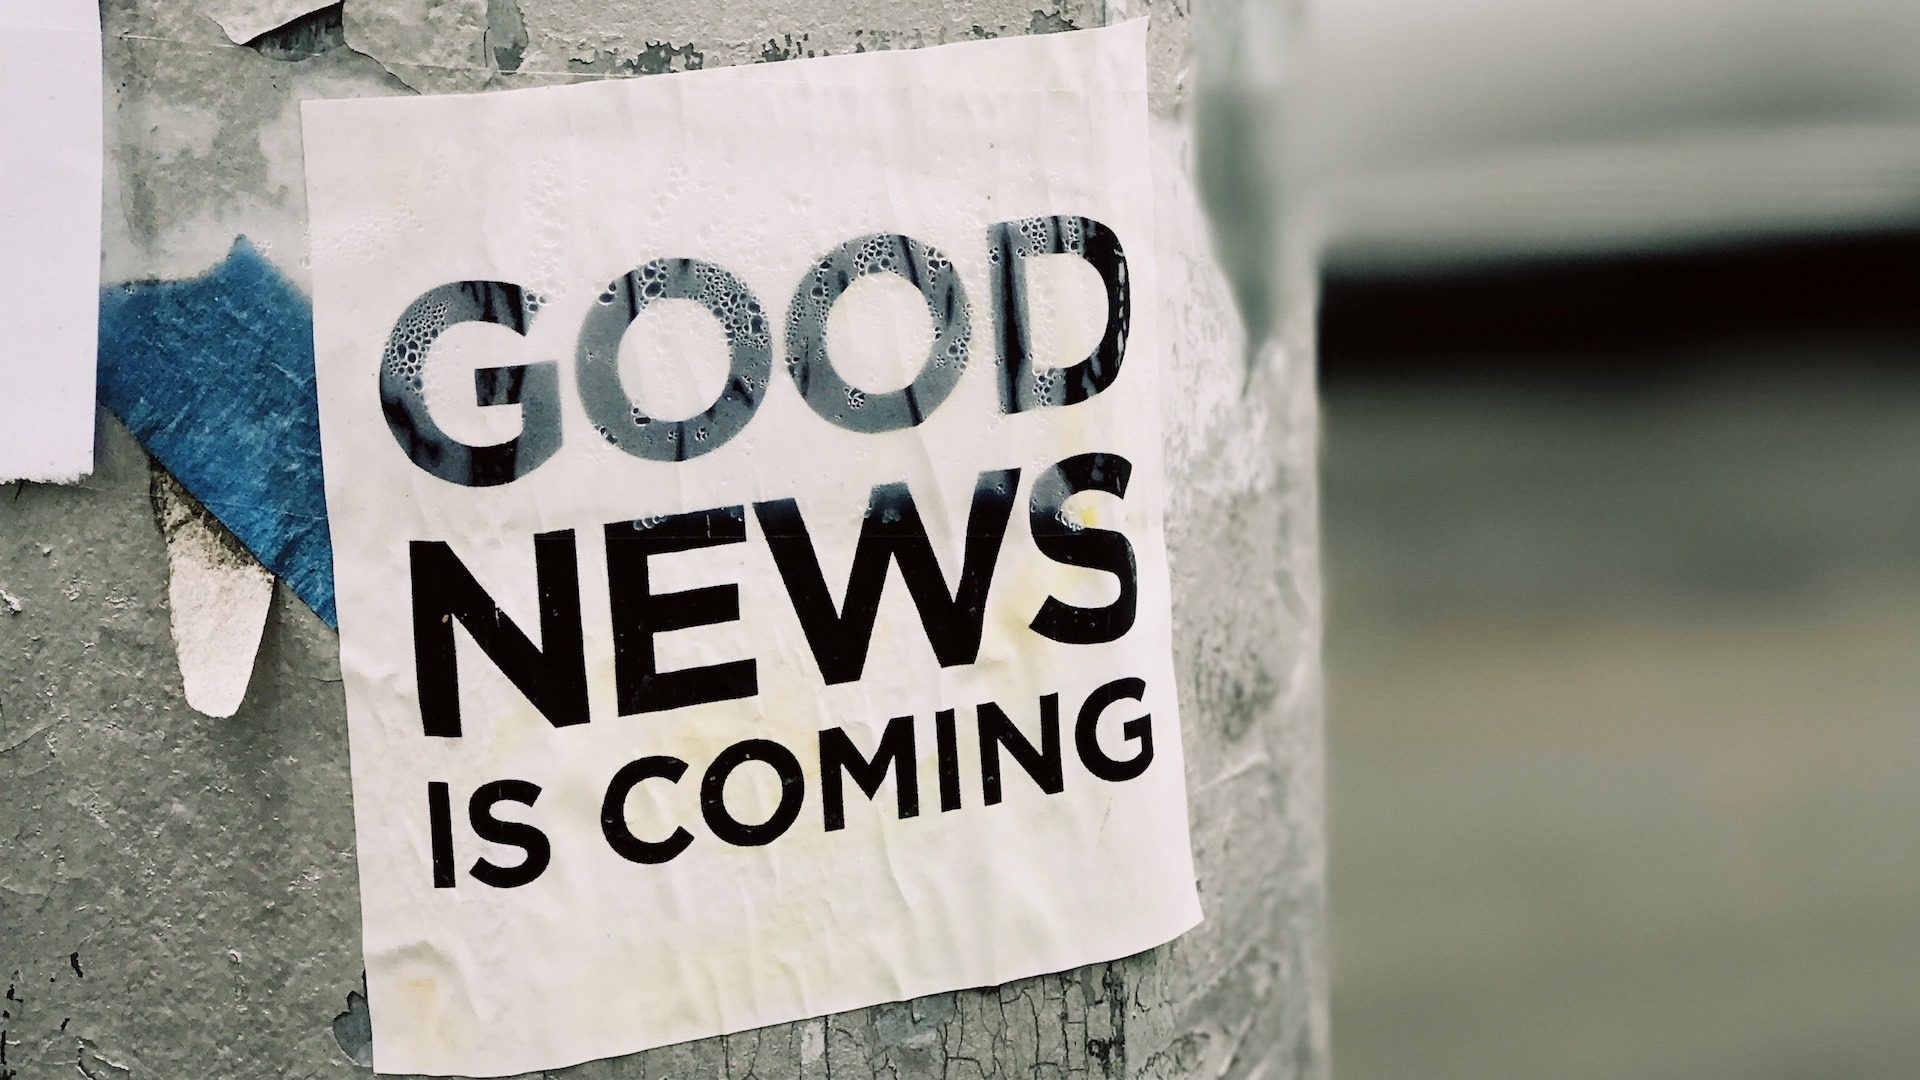 Good news is coming image Bristol marketing agency content agency digital agency